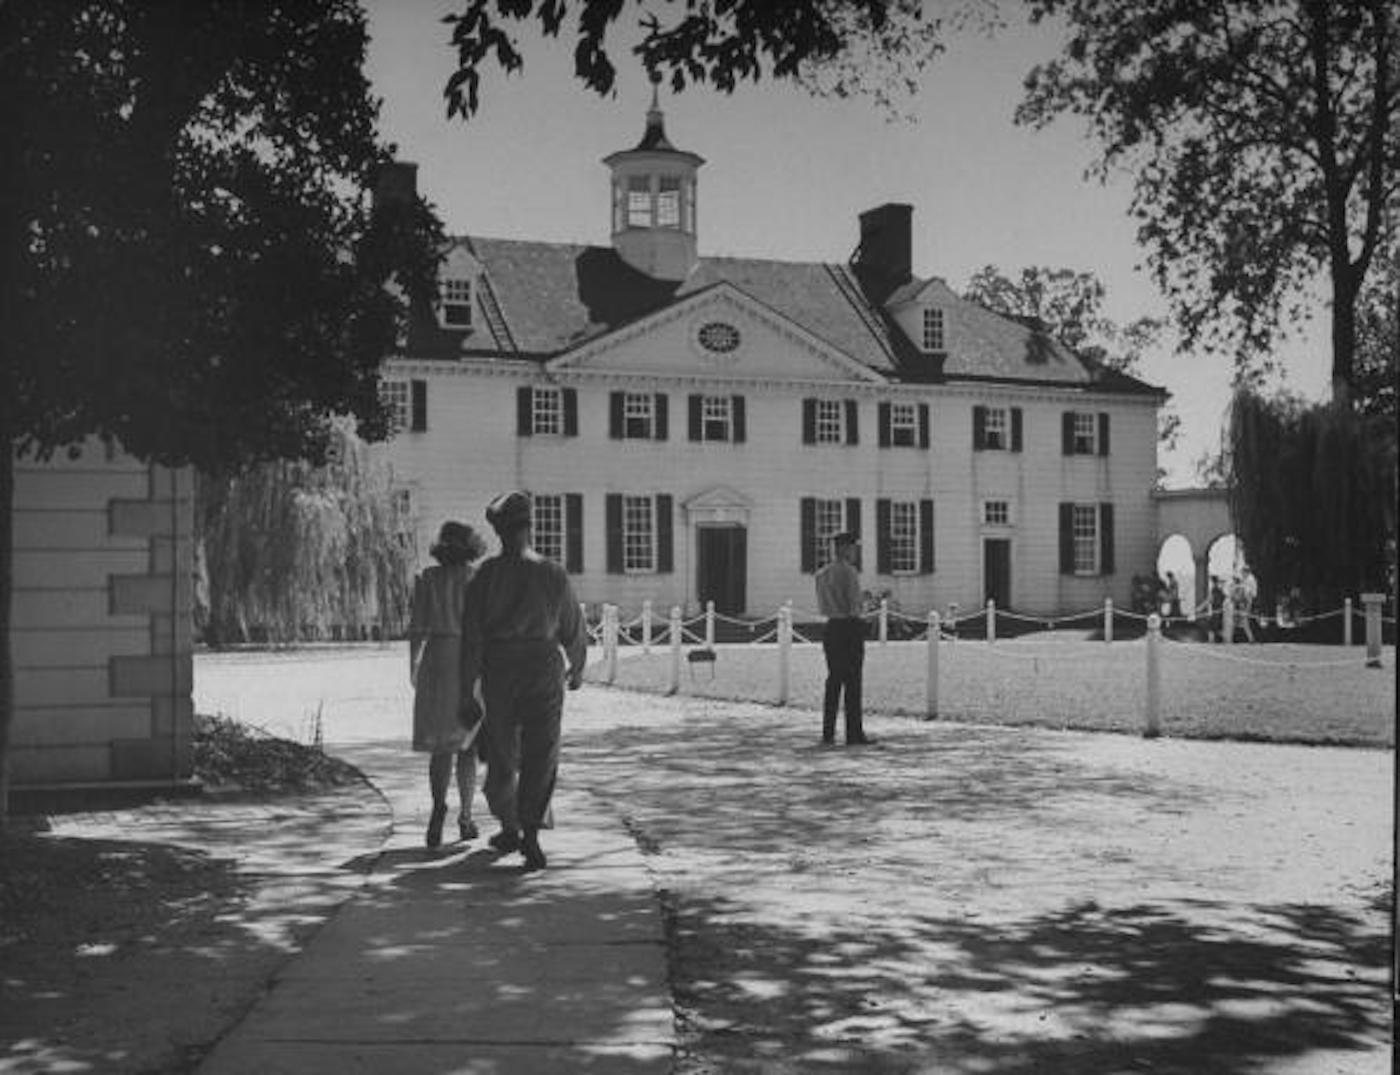 Mount Vernon in 1945 - © Getty Images